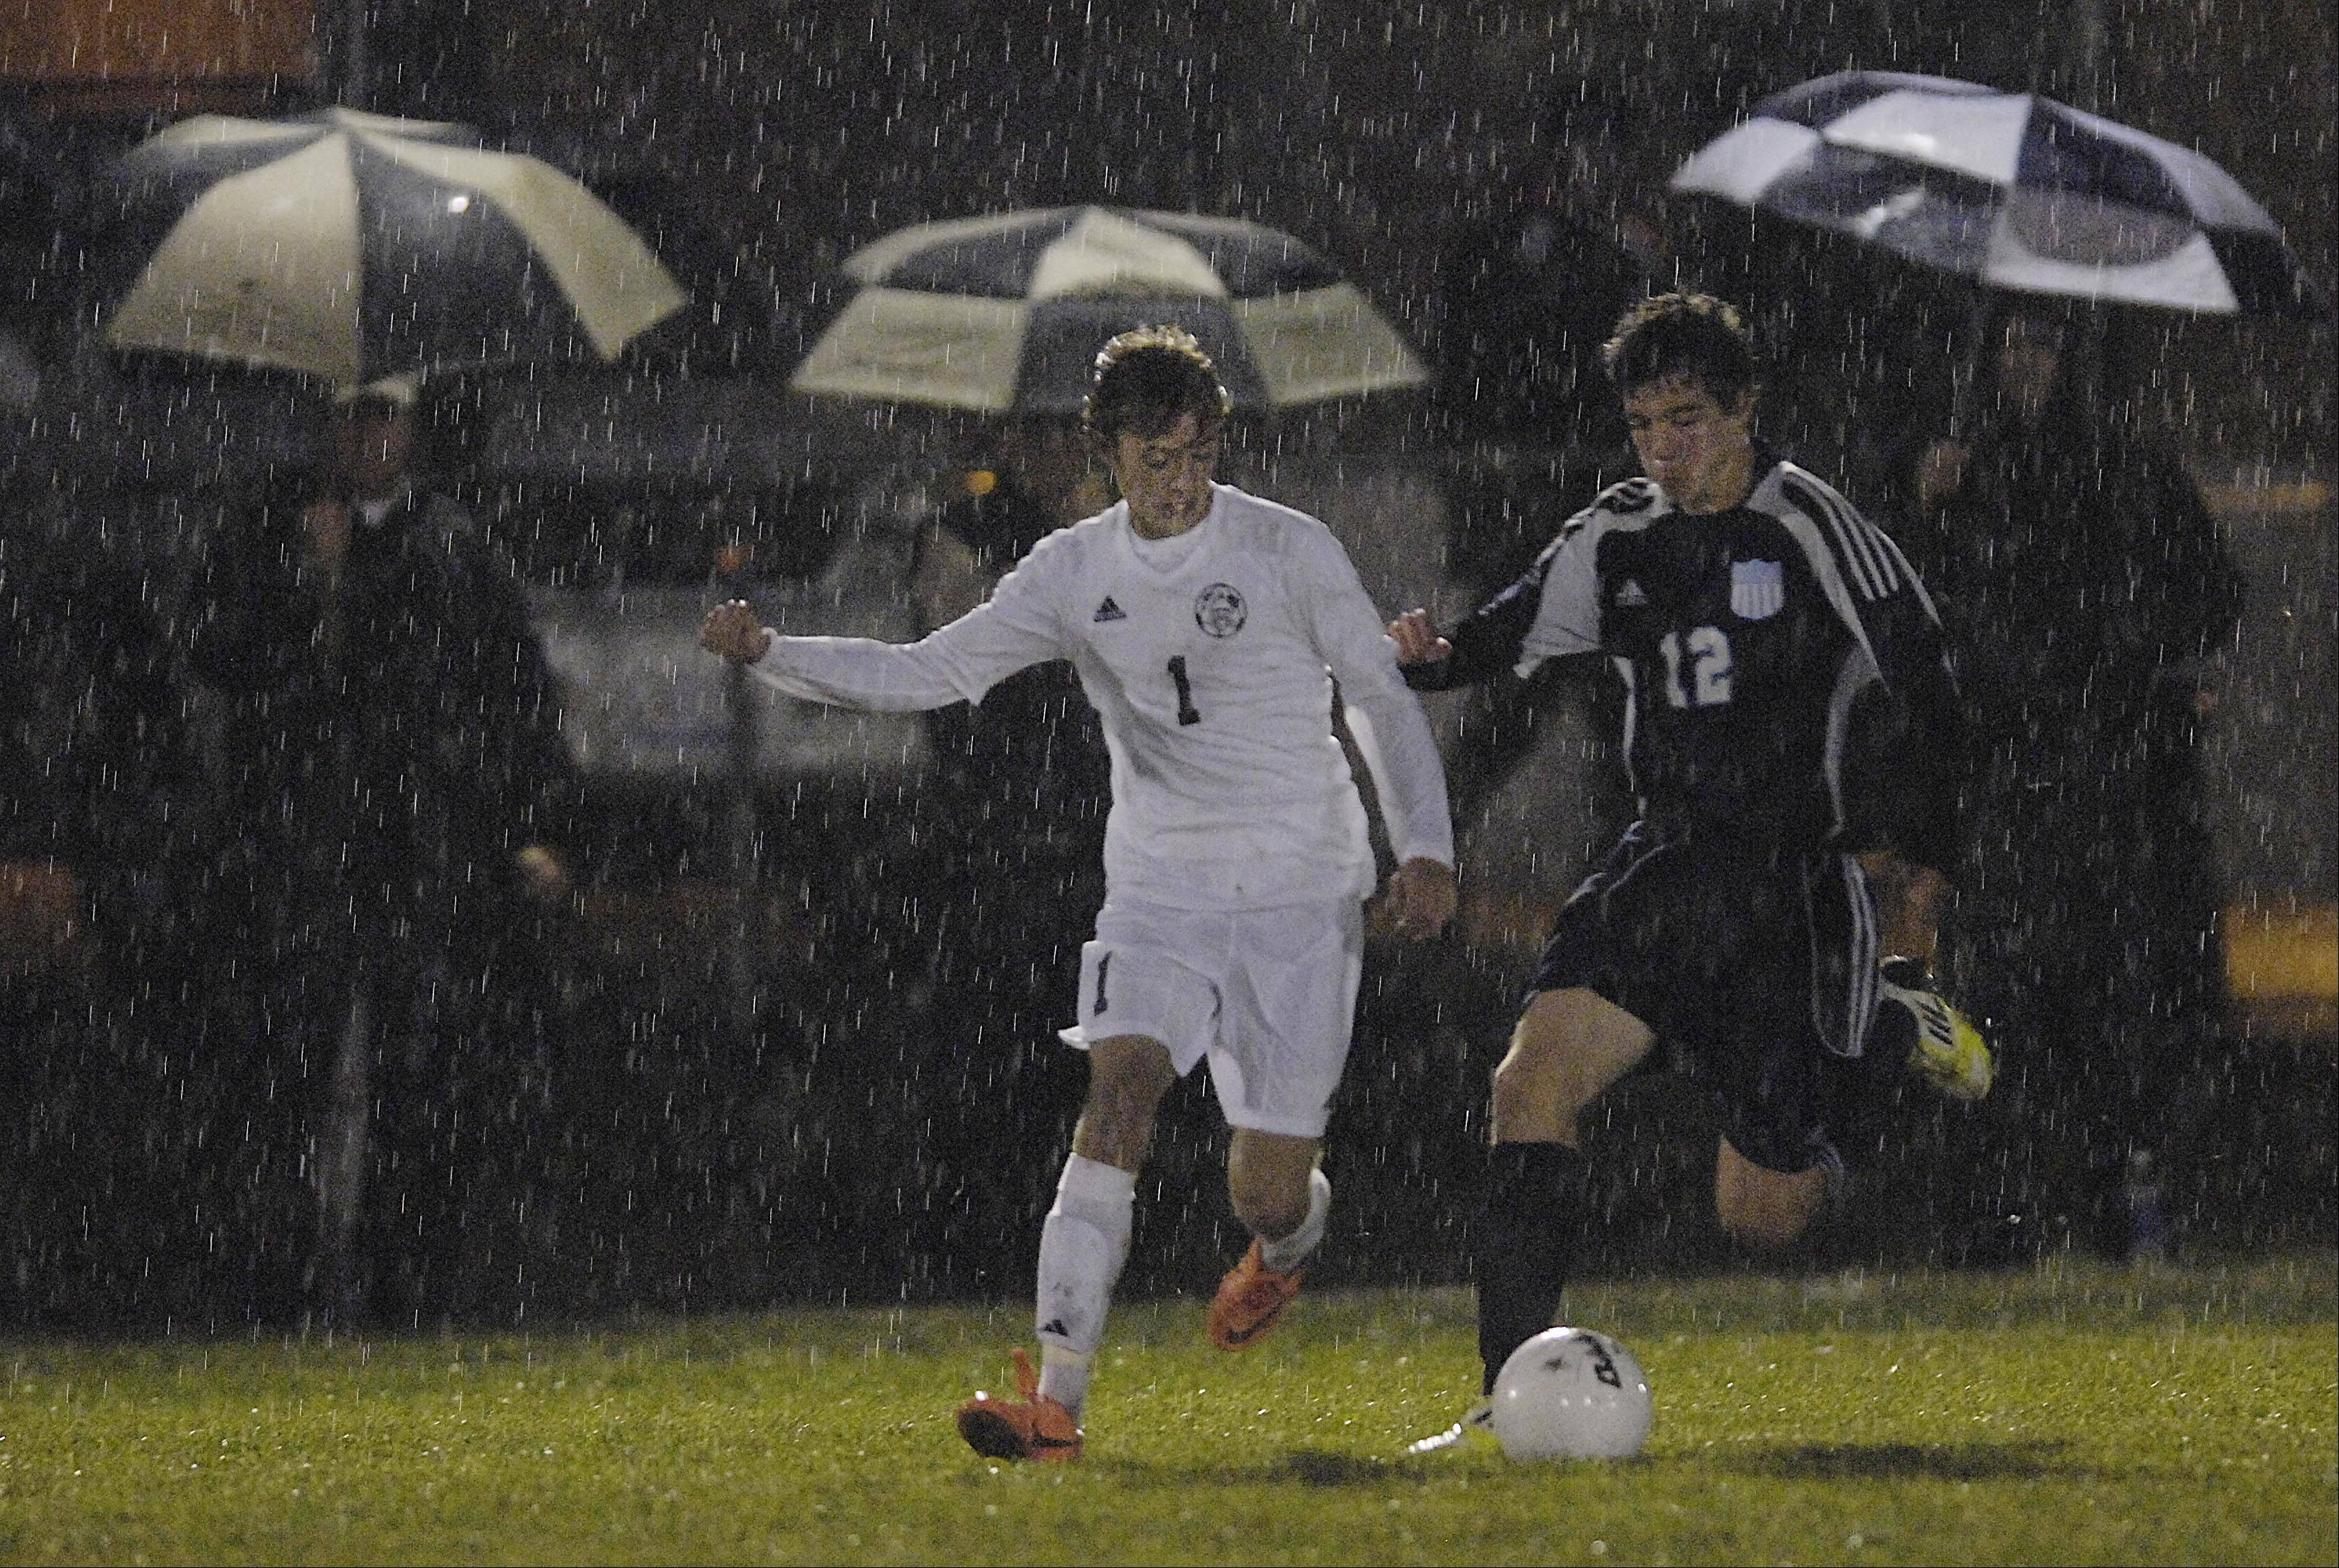 Kaneland's Tyler Siebert, left, and IMSA's Quinn Gungerevans chase the ball in the rain Wednesday in the Burlington regional playoff game.